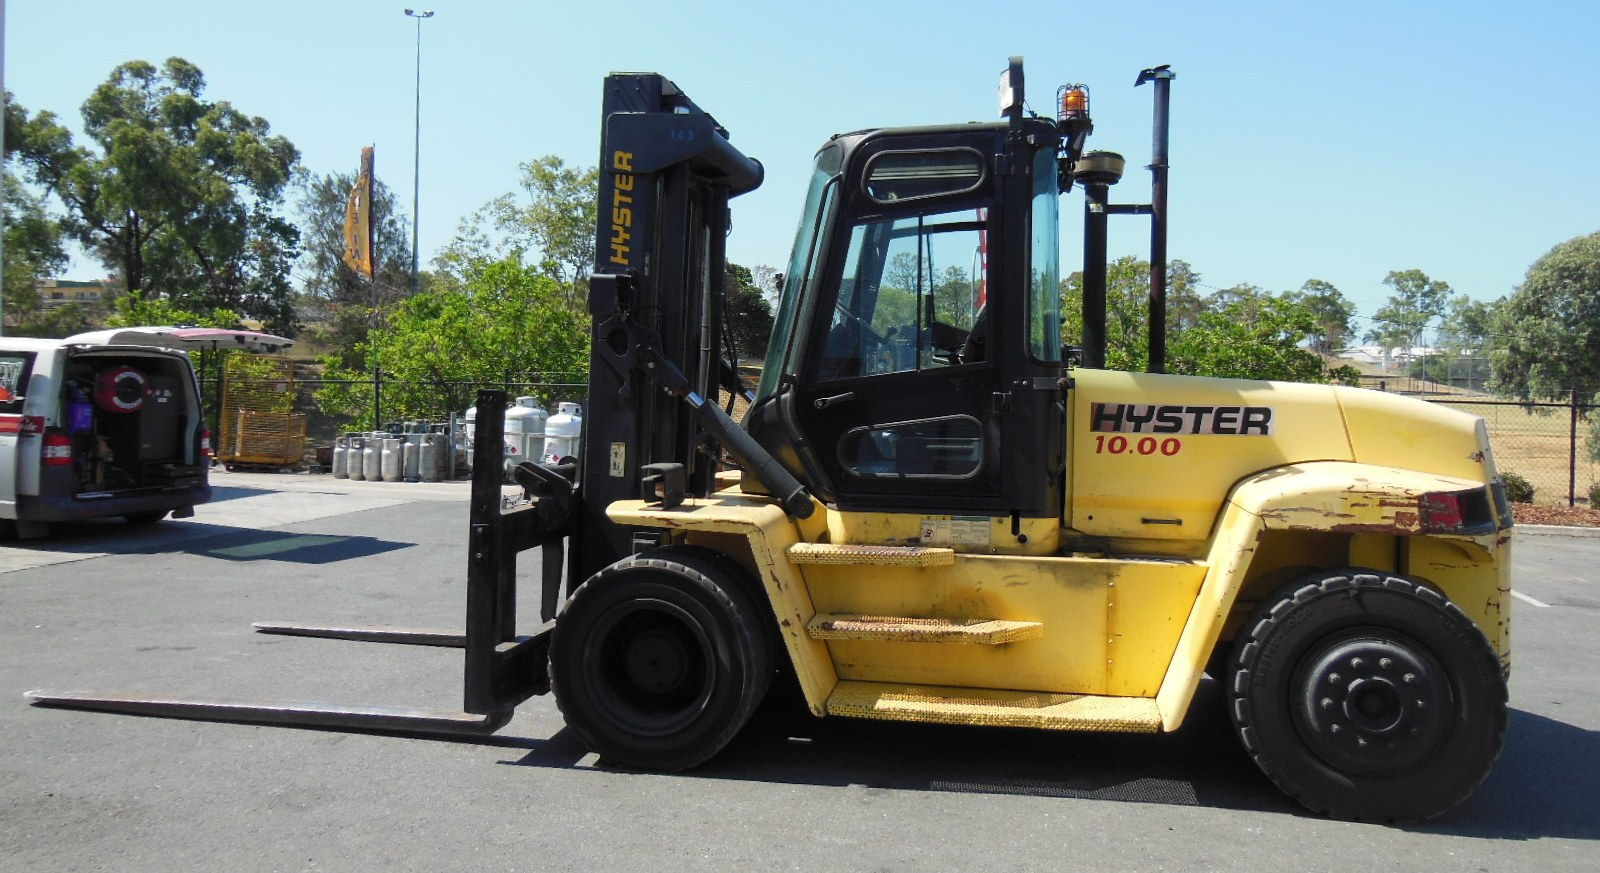 Forklifts for Sale in Victoria – Find One Online Today